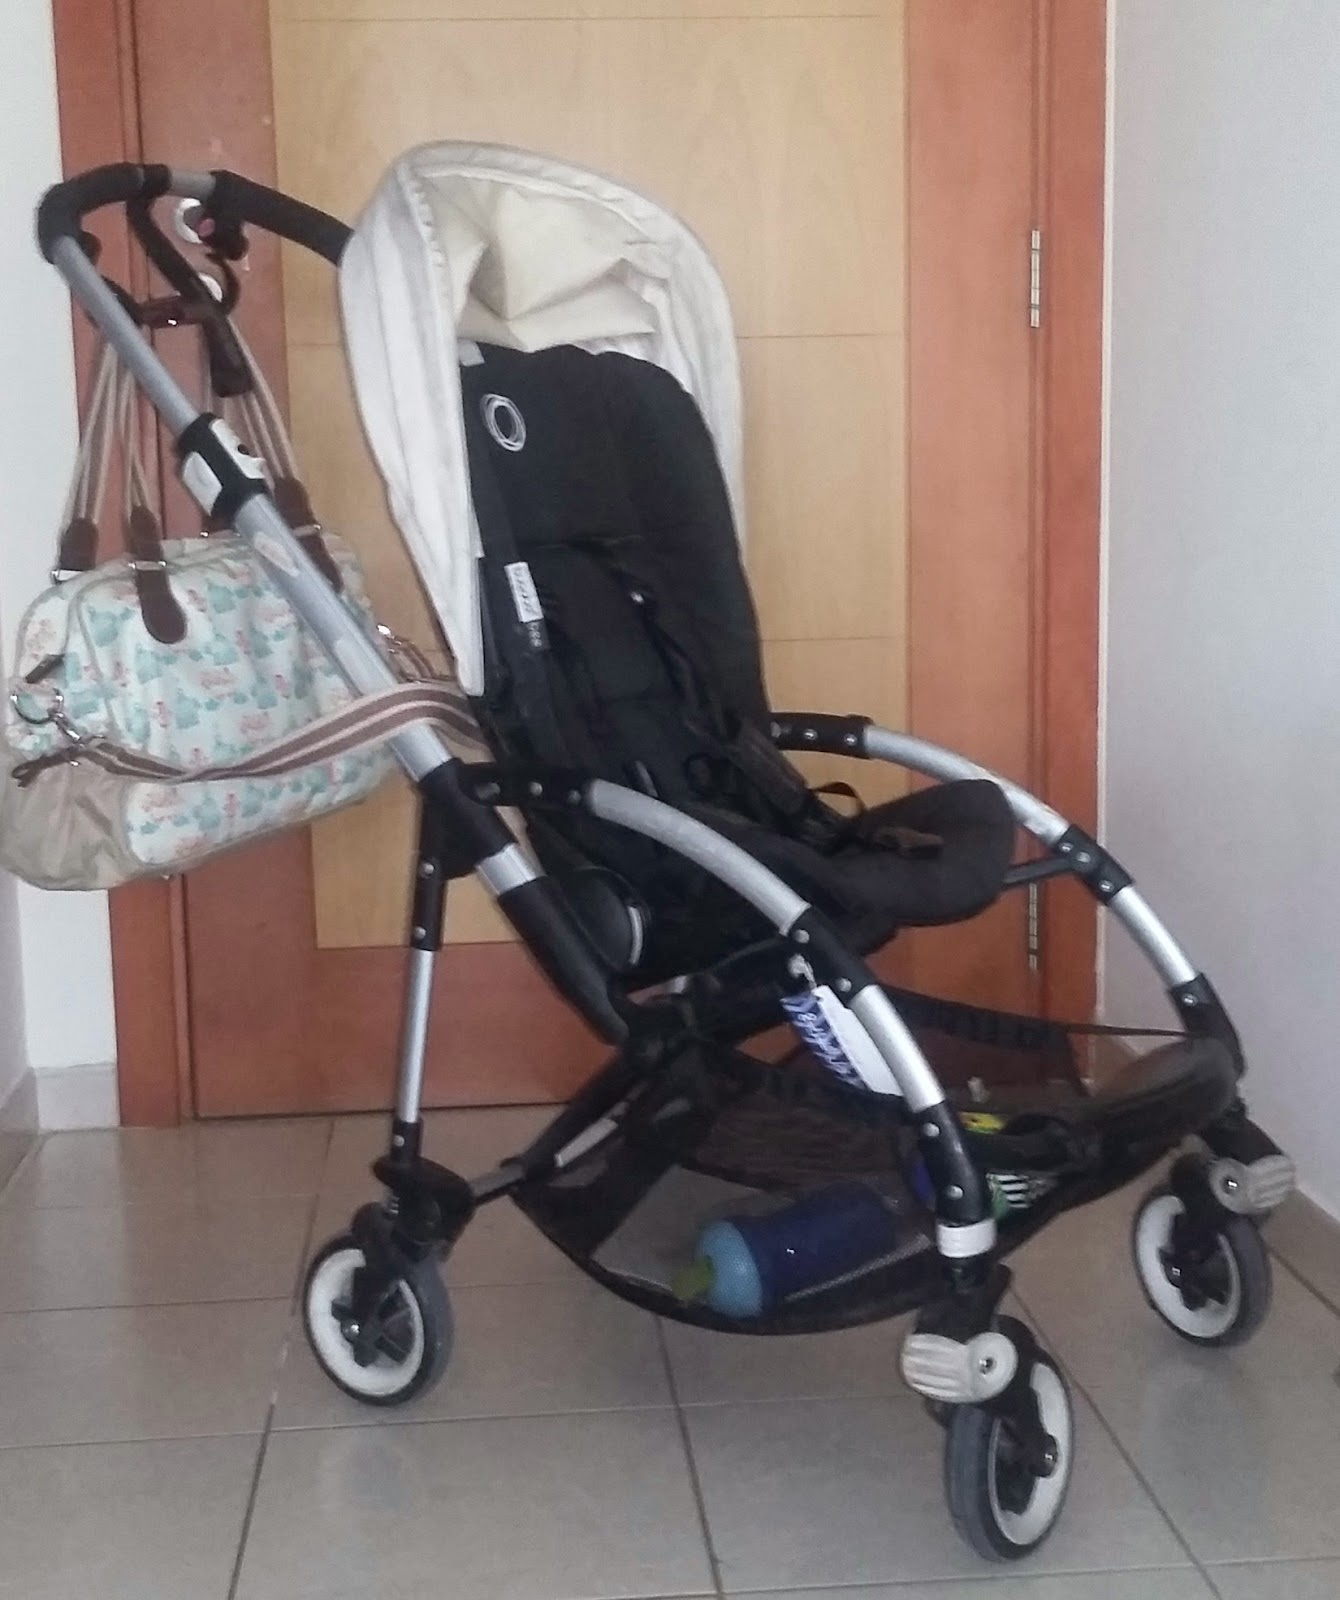 The great double buggy debate